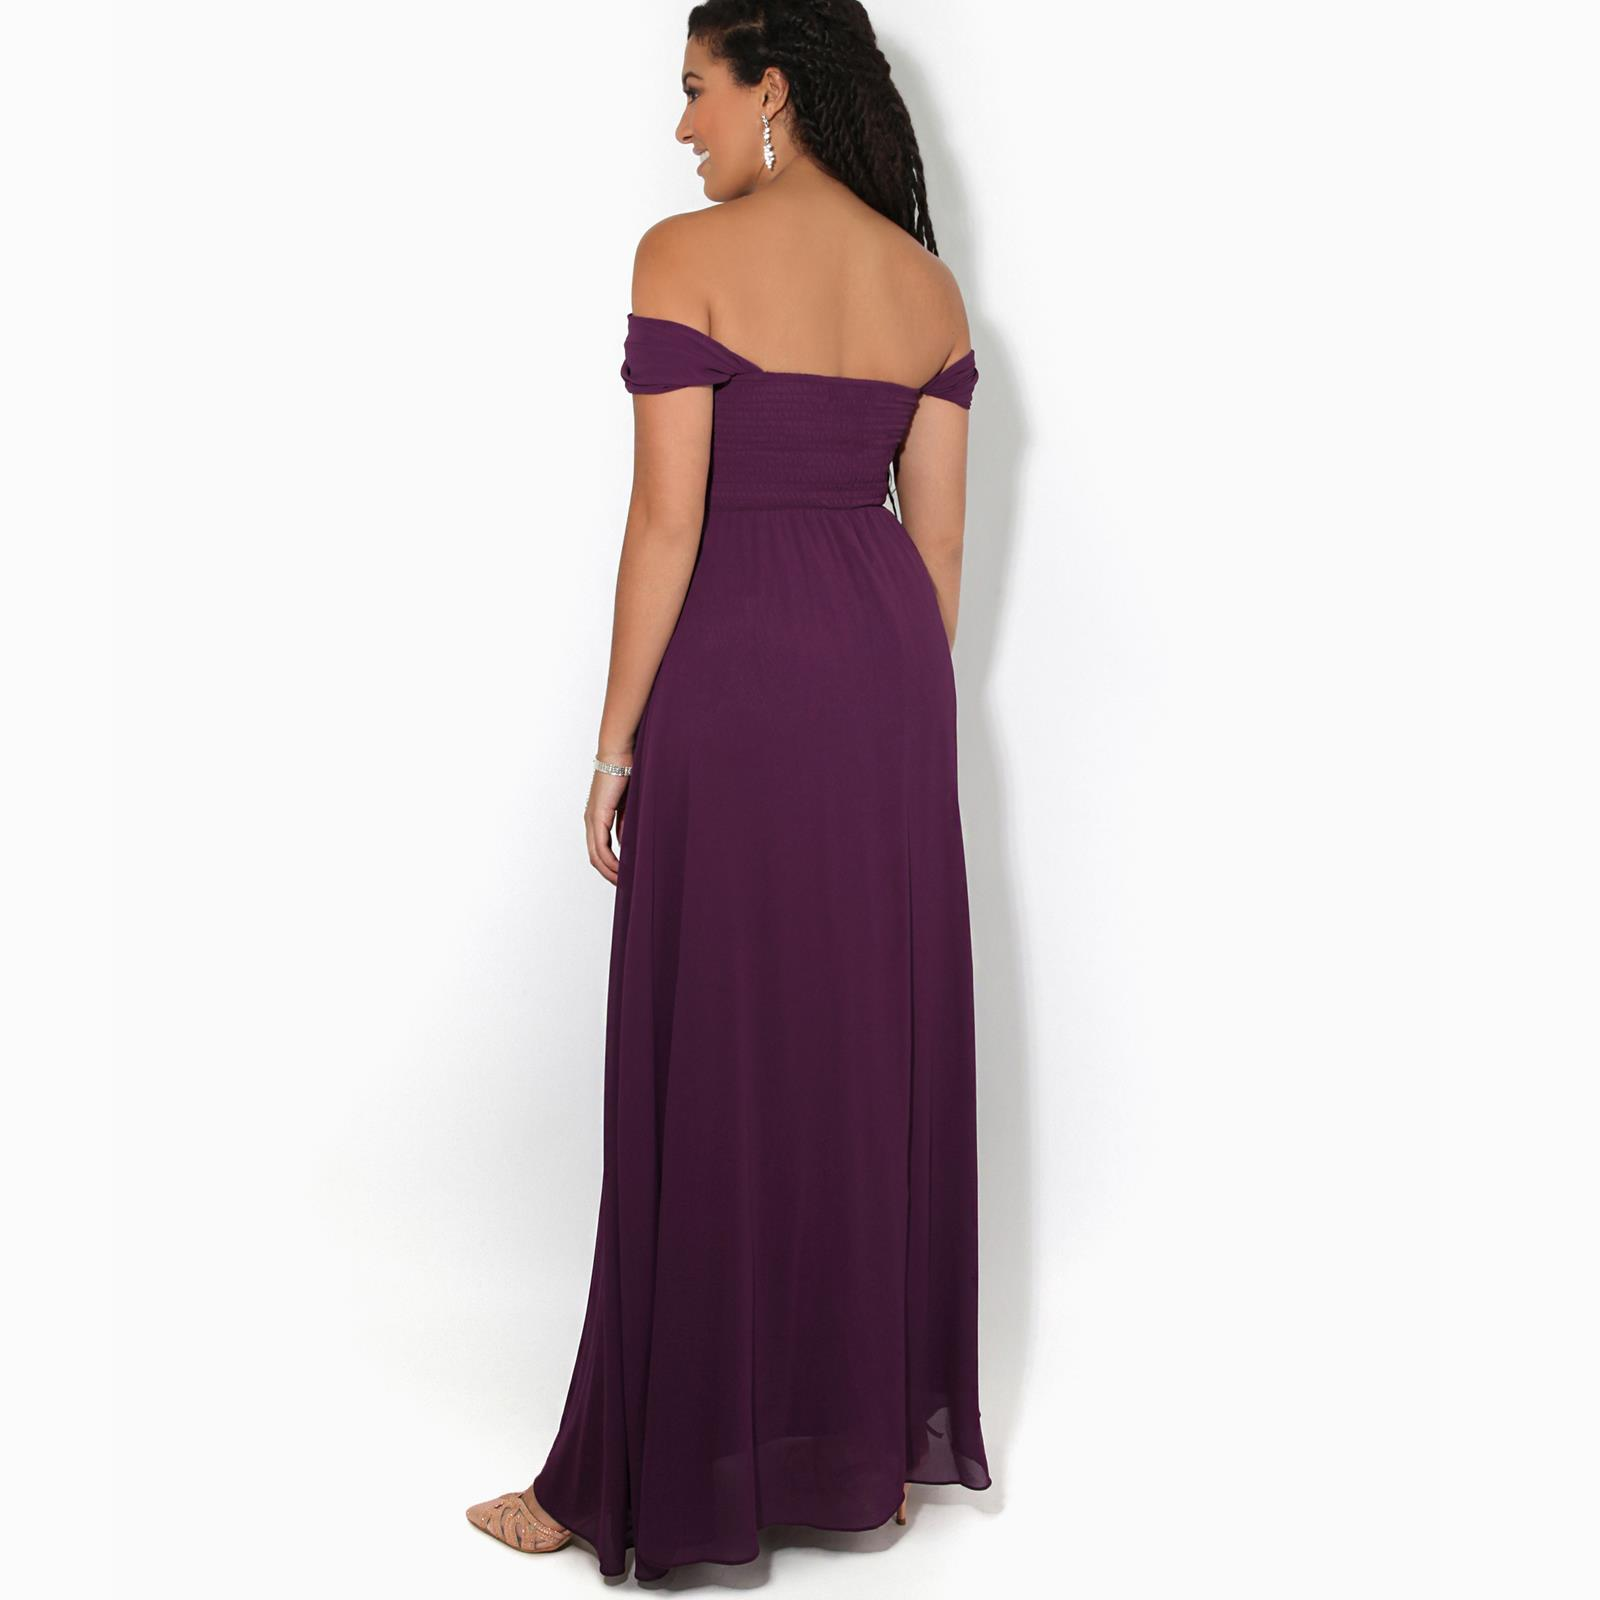 Womens-Formal-Evening-Wedding-Maxi-Prom-Dress-Long-On-Off-Shoulder-Ball-Gown thumbnail 9